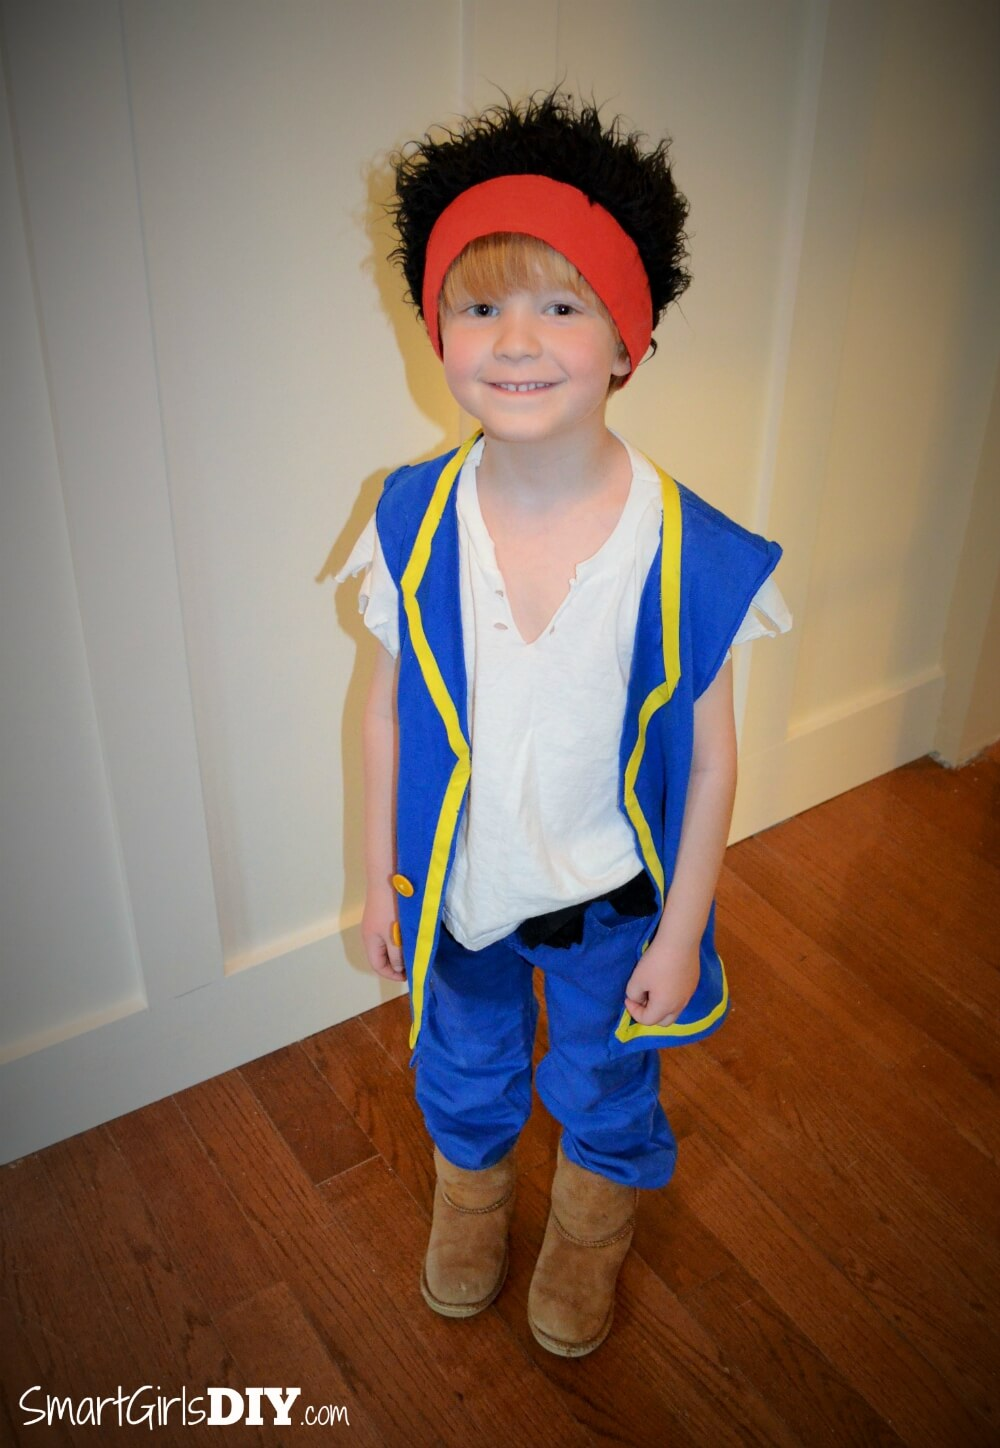 Diy jake and the never land pirates costume solutioingenieria Image collections